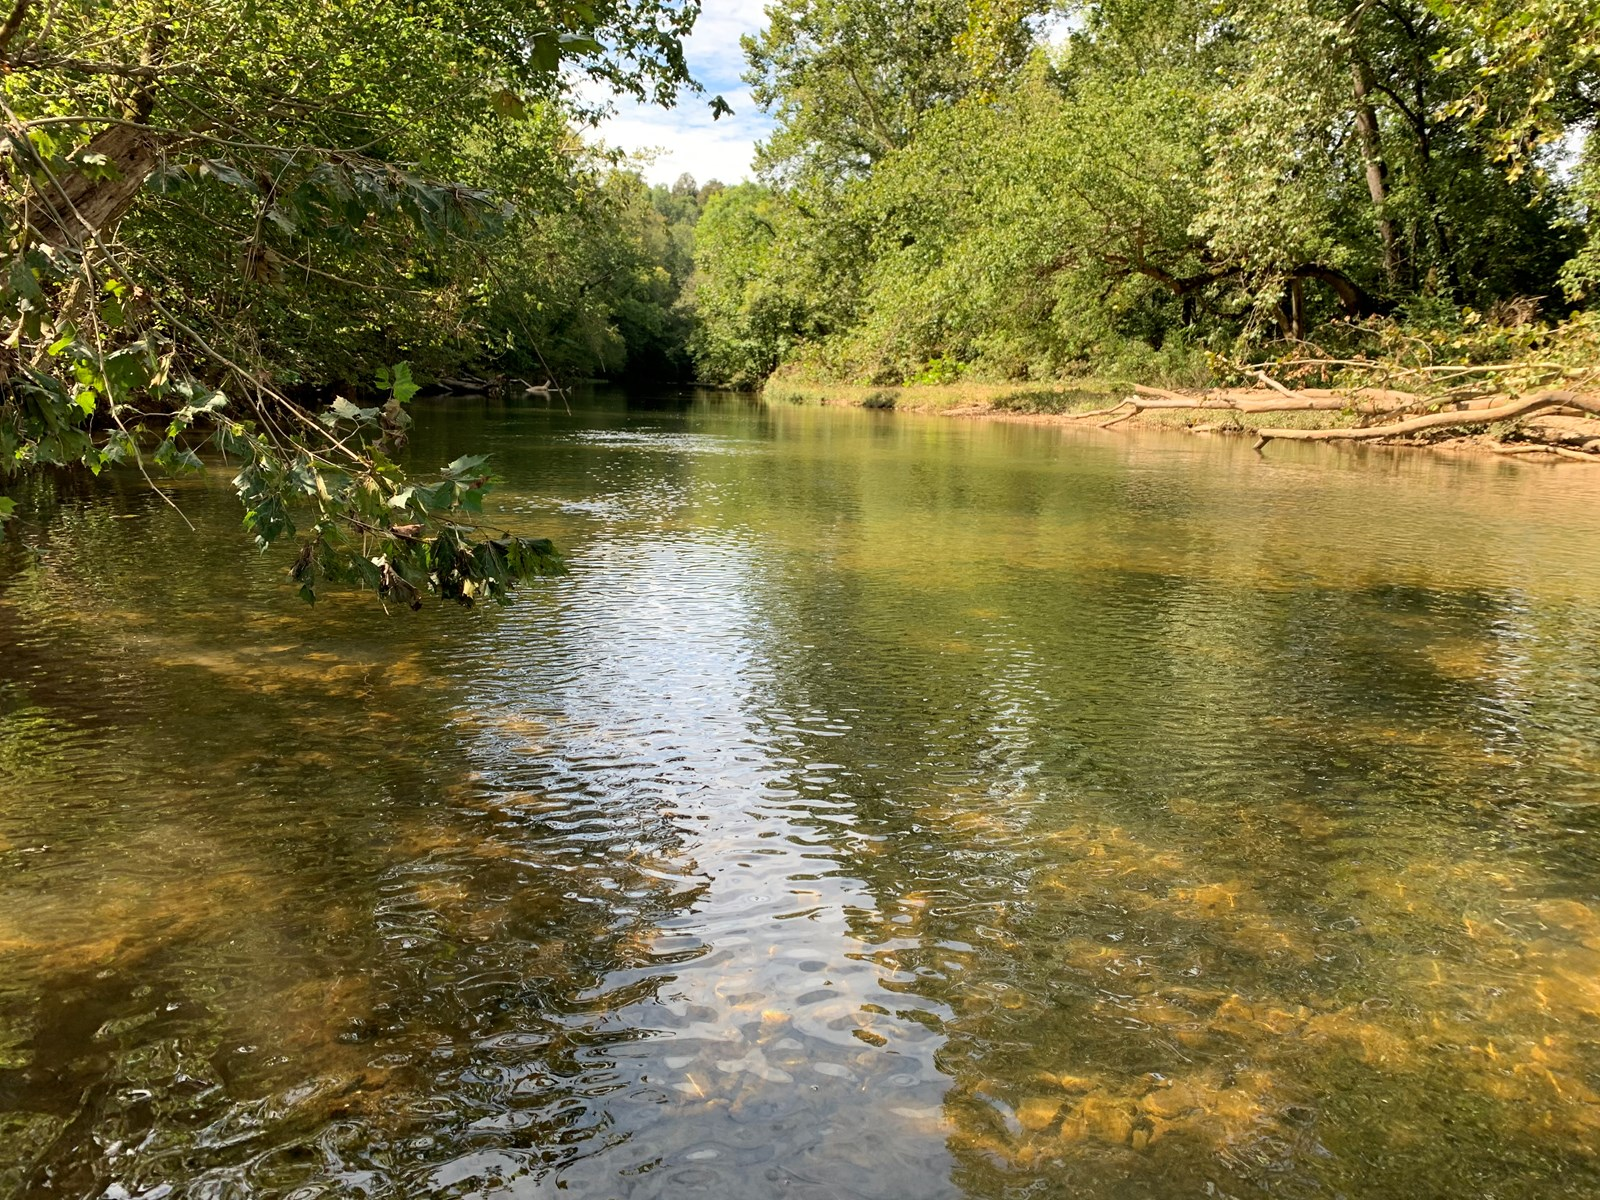 Land for sale in TN with Creek, Septic and RV Camper